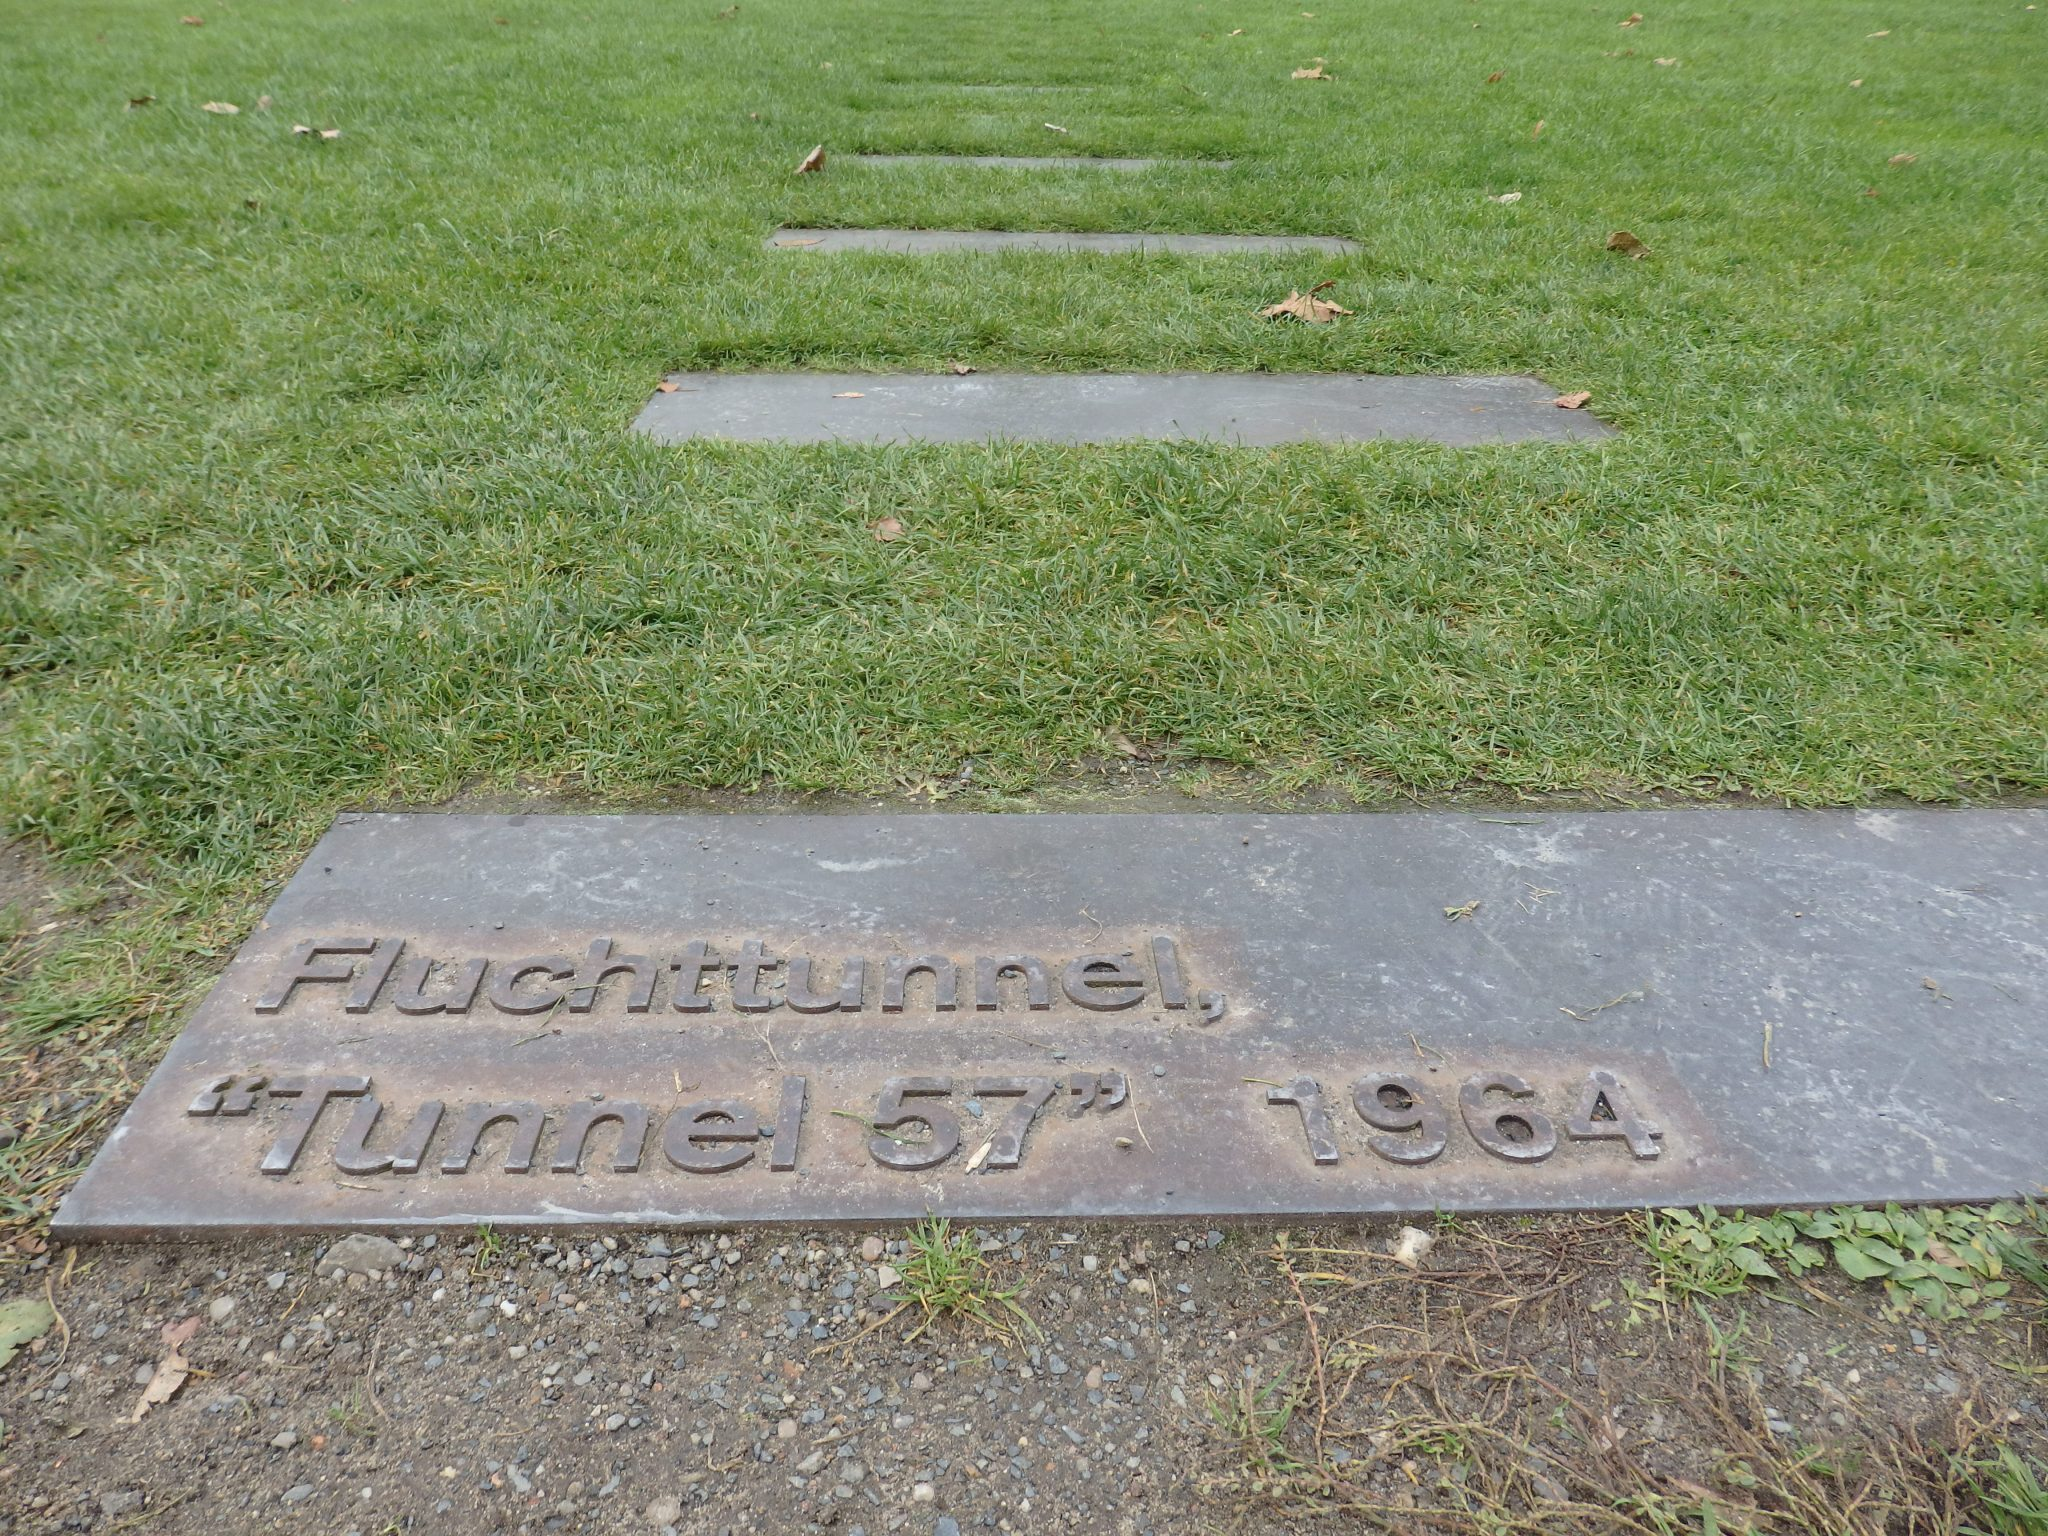 These metal plates mark the route of one of many tunnels dug under the Berlin Wall.